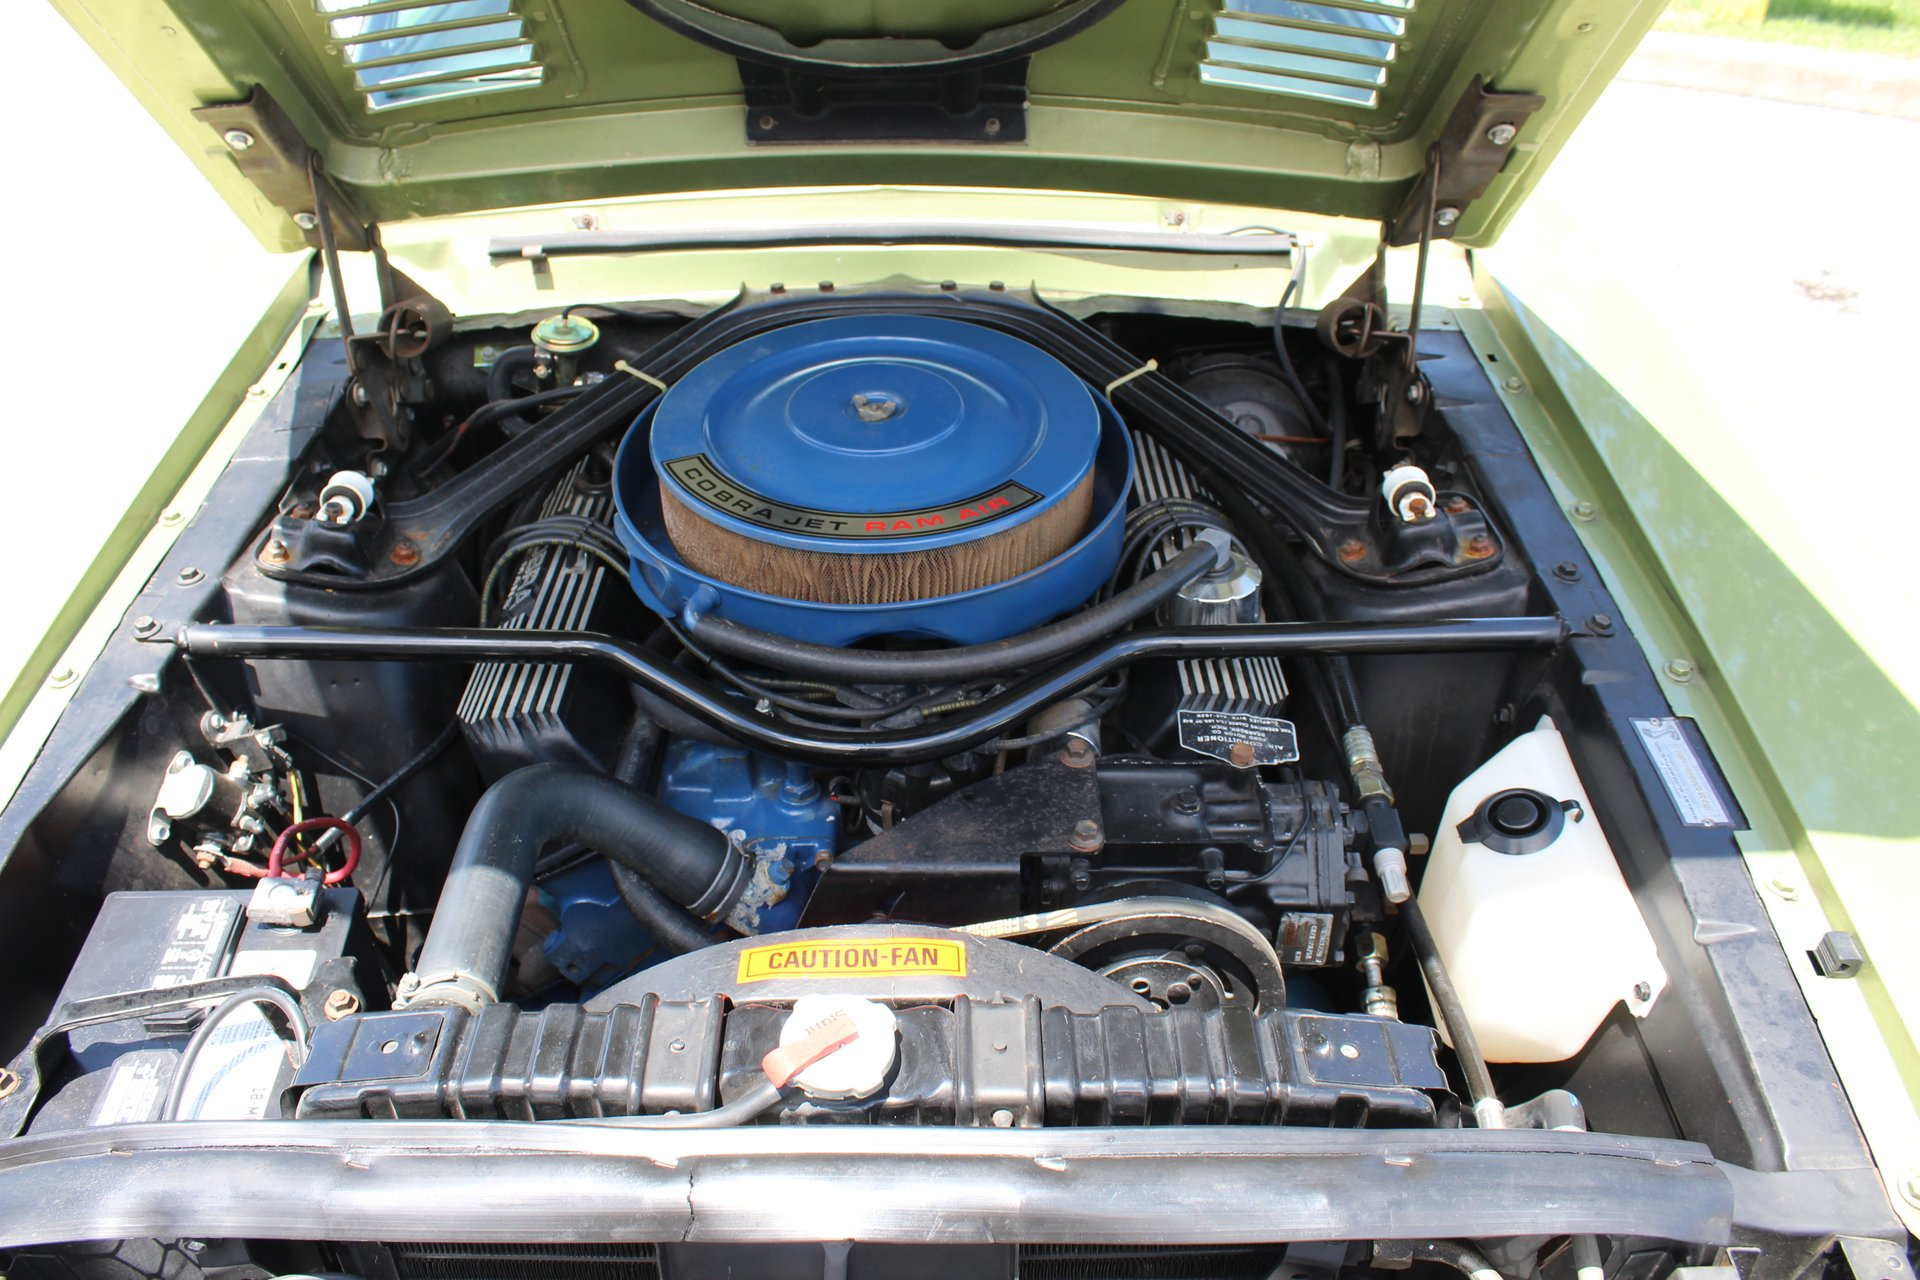 1968 Shelby GT500KR clean engine